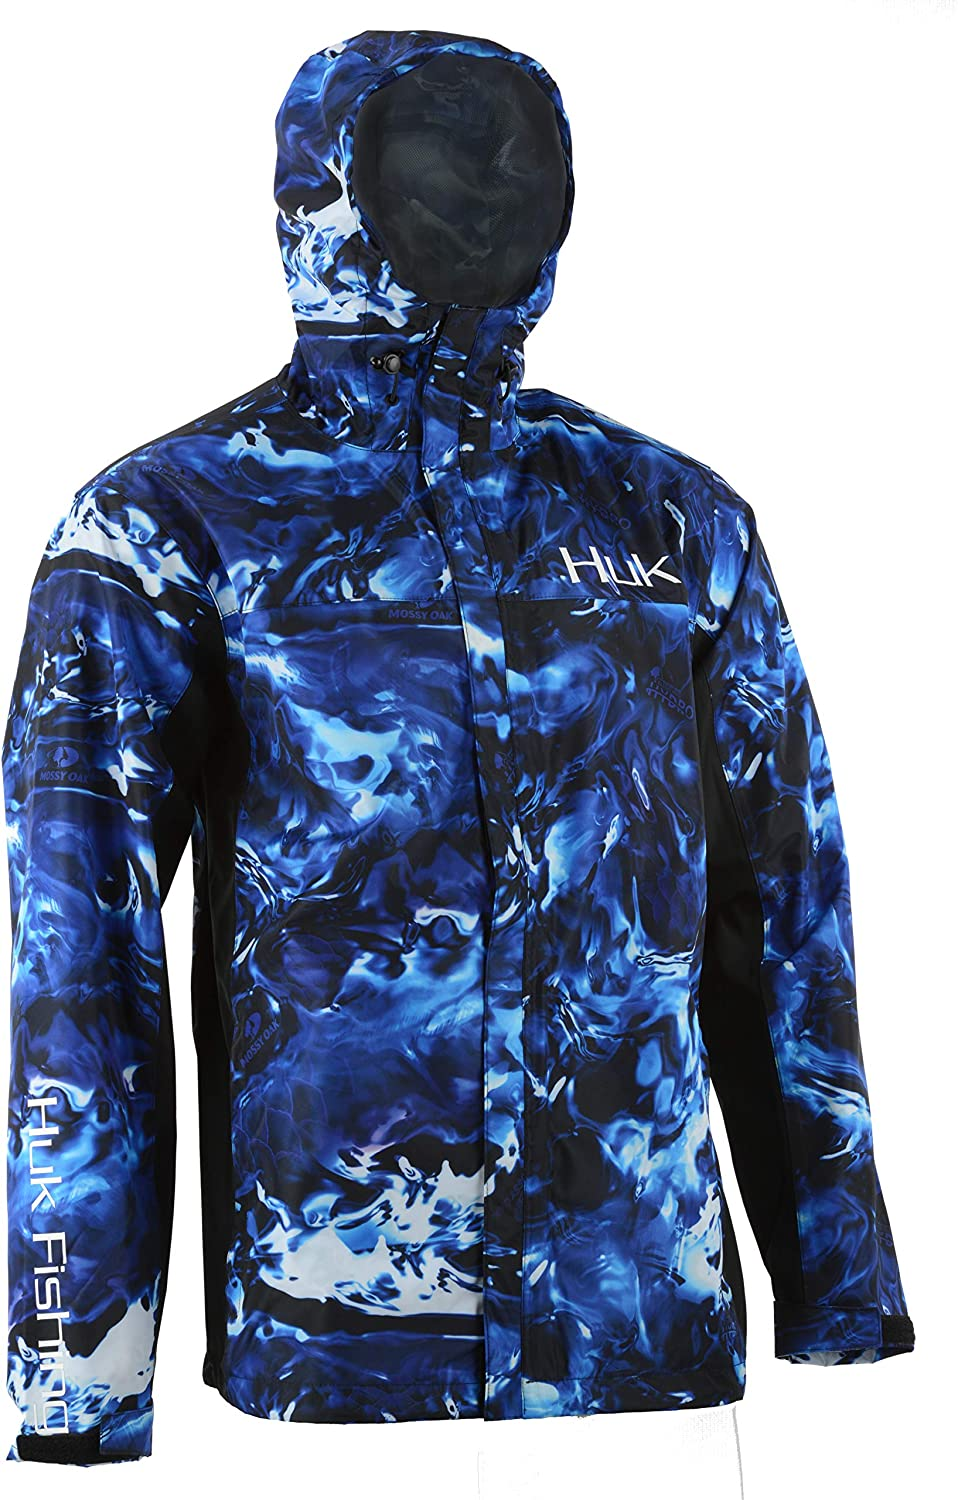 HUK Mens CYA Camo Packable Rain Jacket